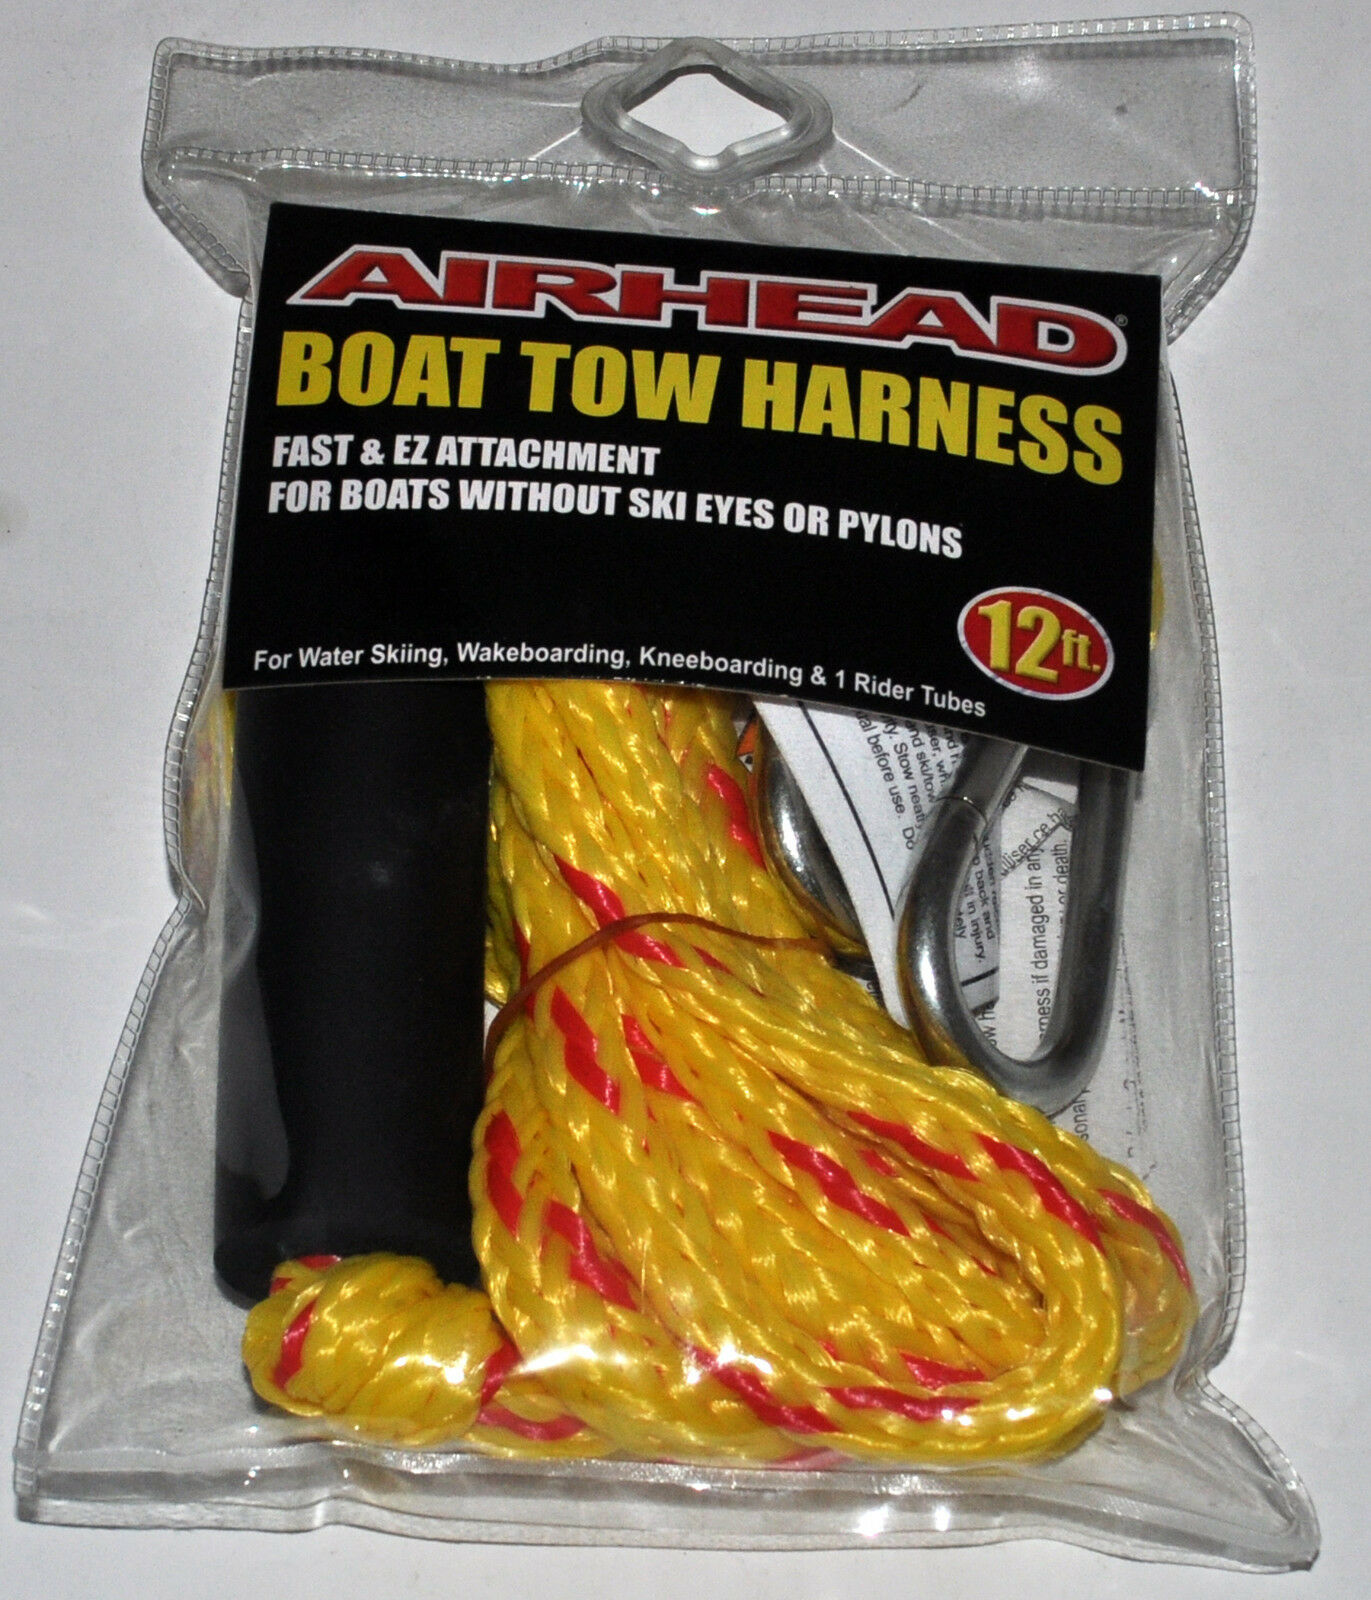 Airhead 12 Ft. Boat Tow Harness 1 of 2Only 1 available ...